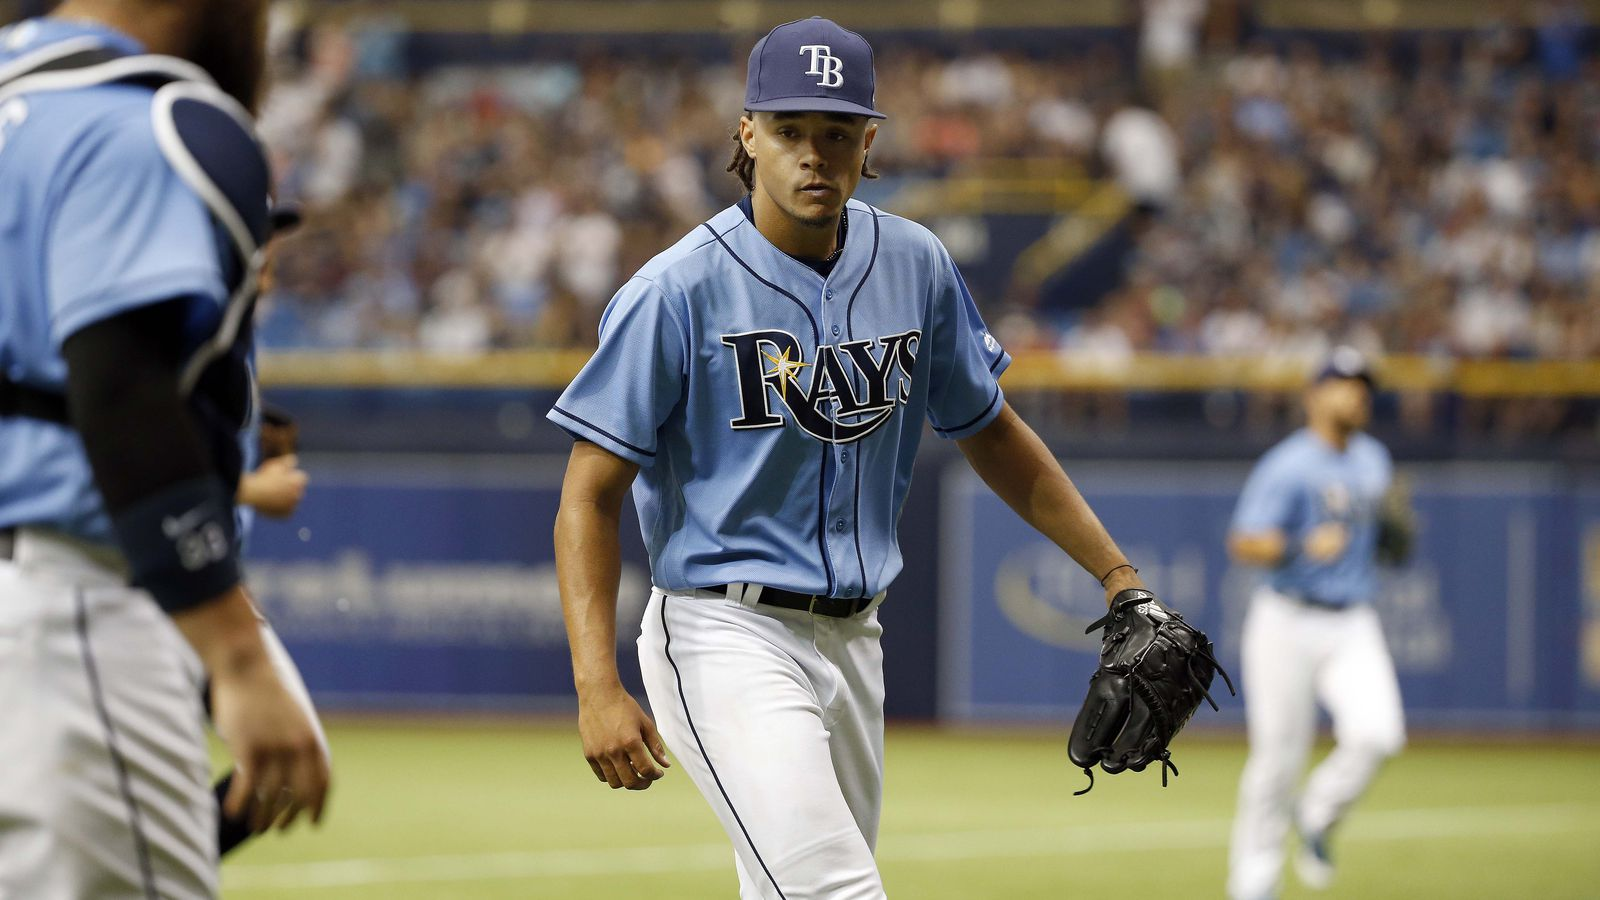 Rays ace Chris Archer showed off 4 pitches on Opening Day